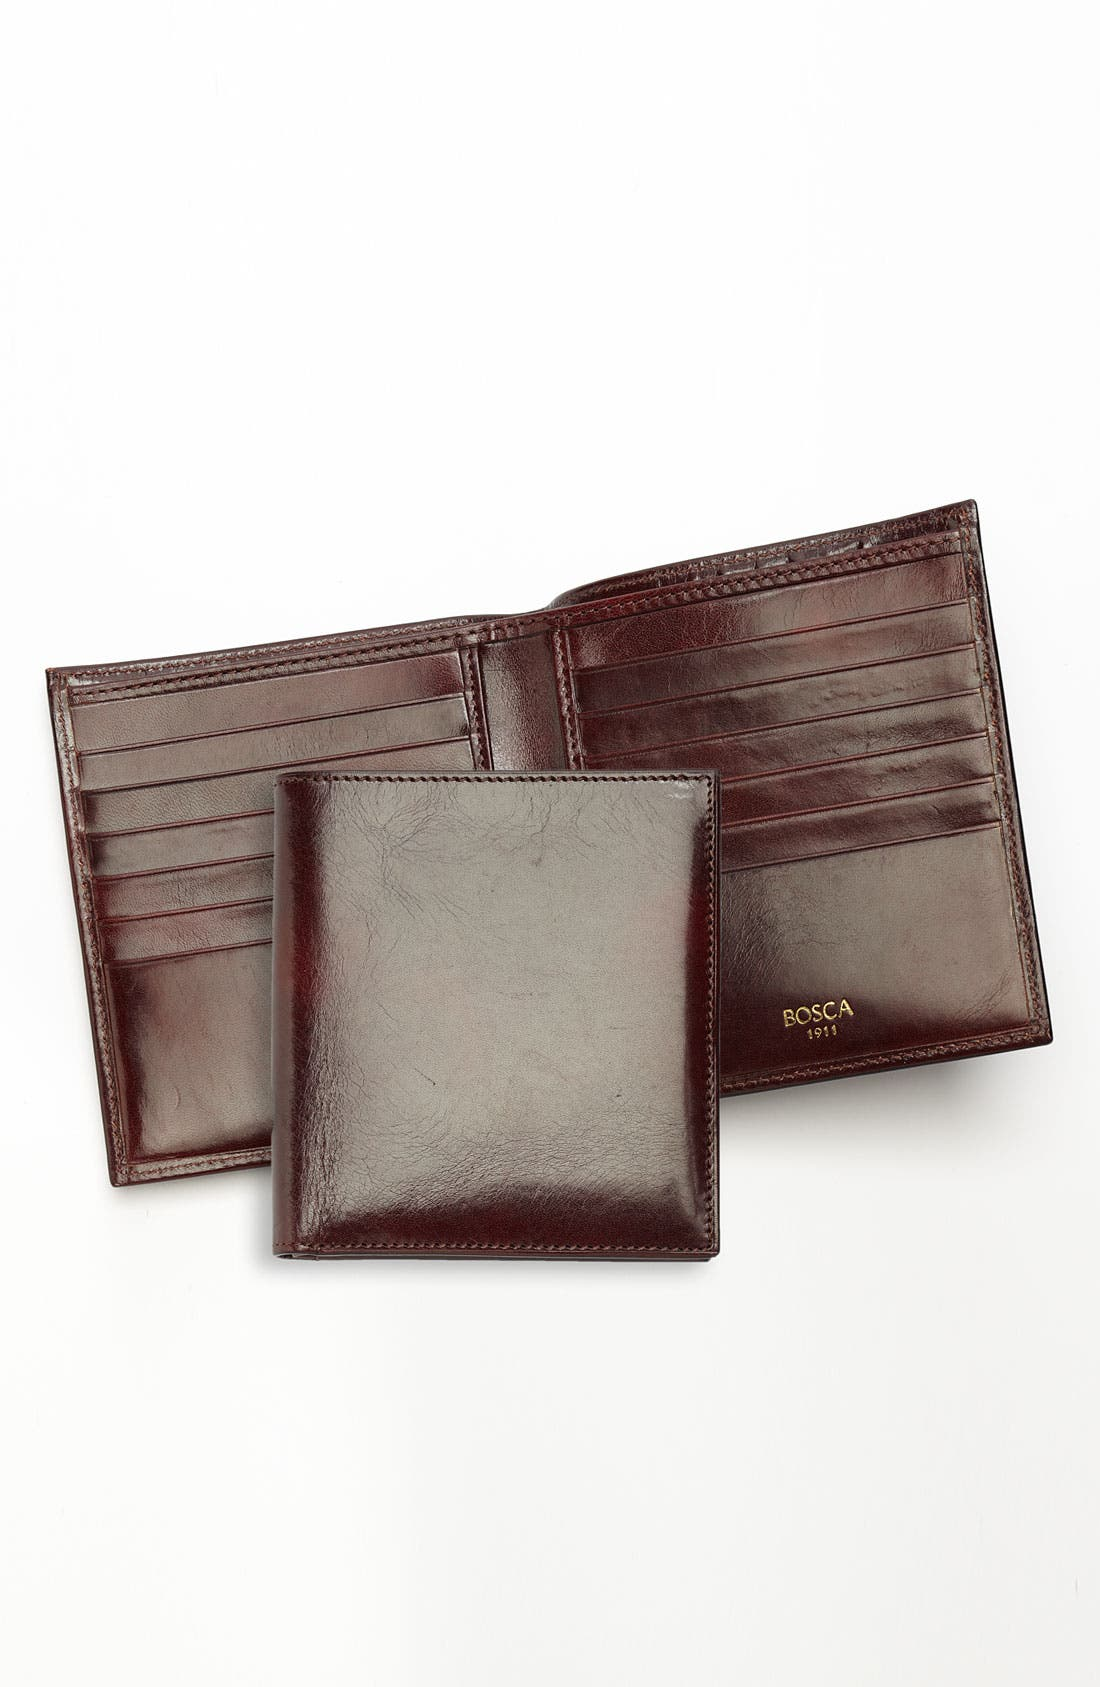 'Old Leather' Credit Wallet,                             Main thumbnail 1, color,                             DARK BROWN